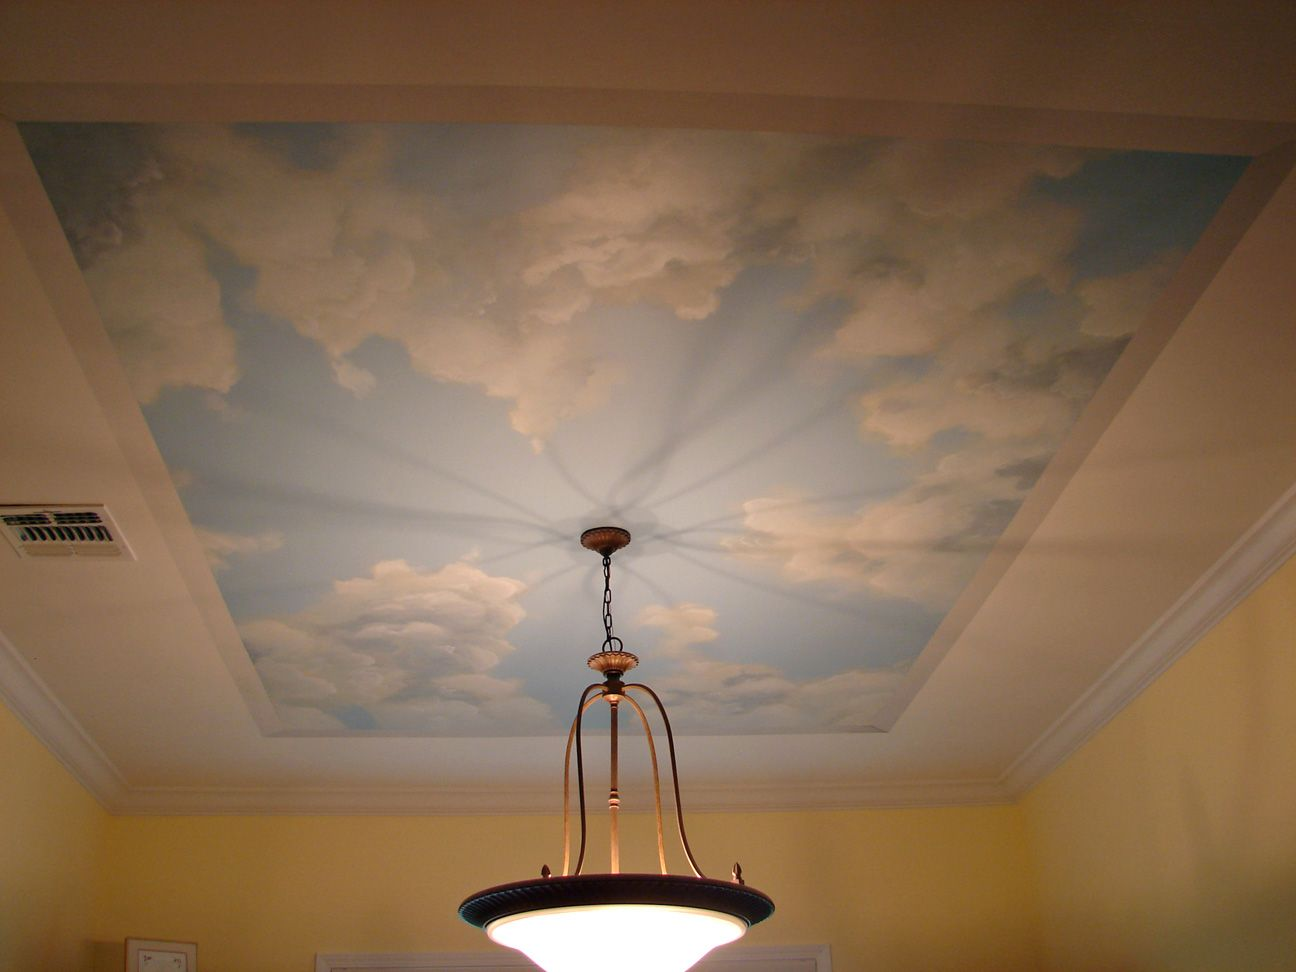 Bedroom ceiling paint ideas - Full View Of A Hand Painted Dining Room Ceiling Sky Cloud Mural